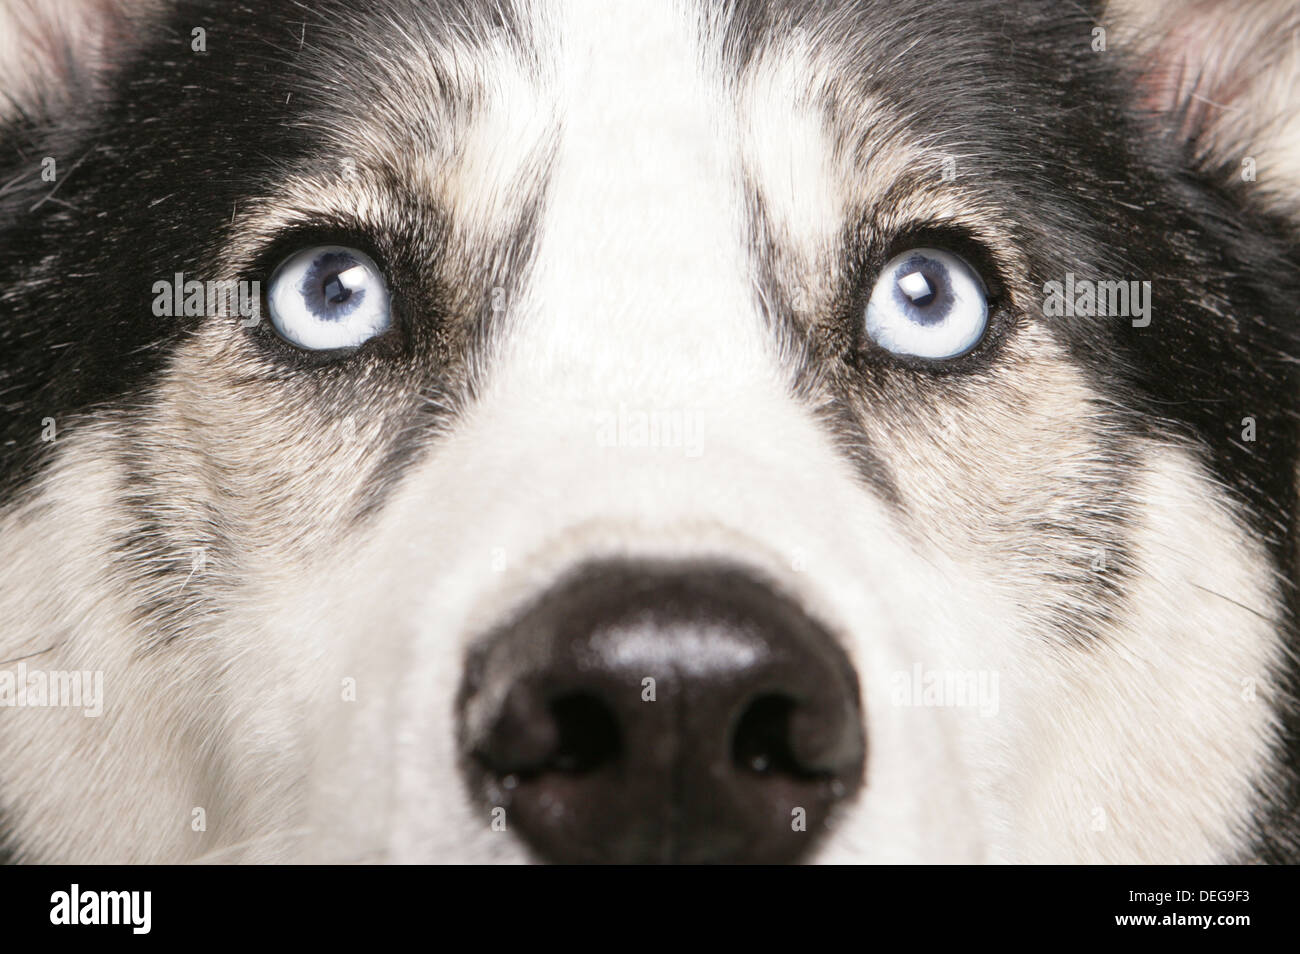 Siberian Husky Eyes Close Up Abstract Stock Photo 60594999 Alamy